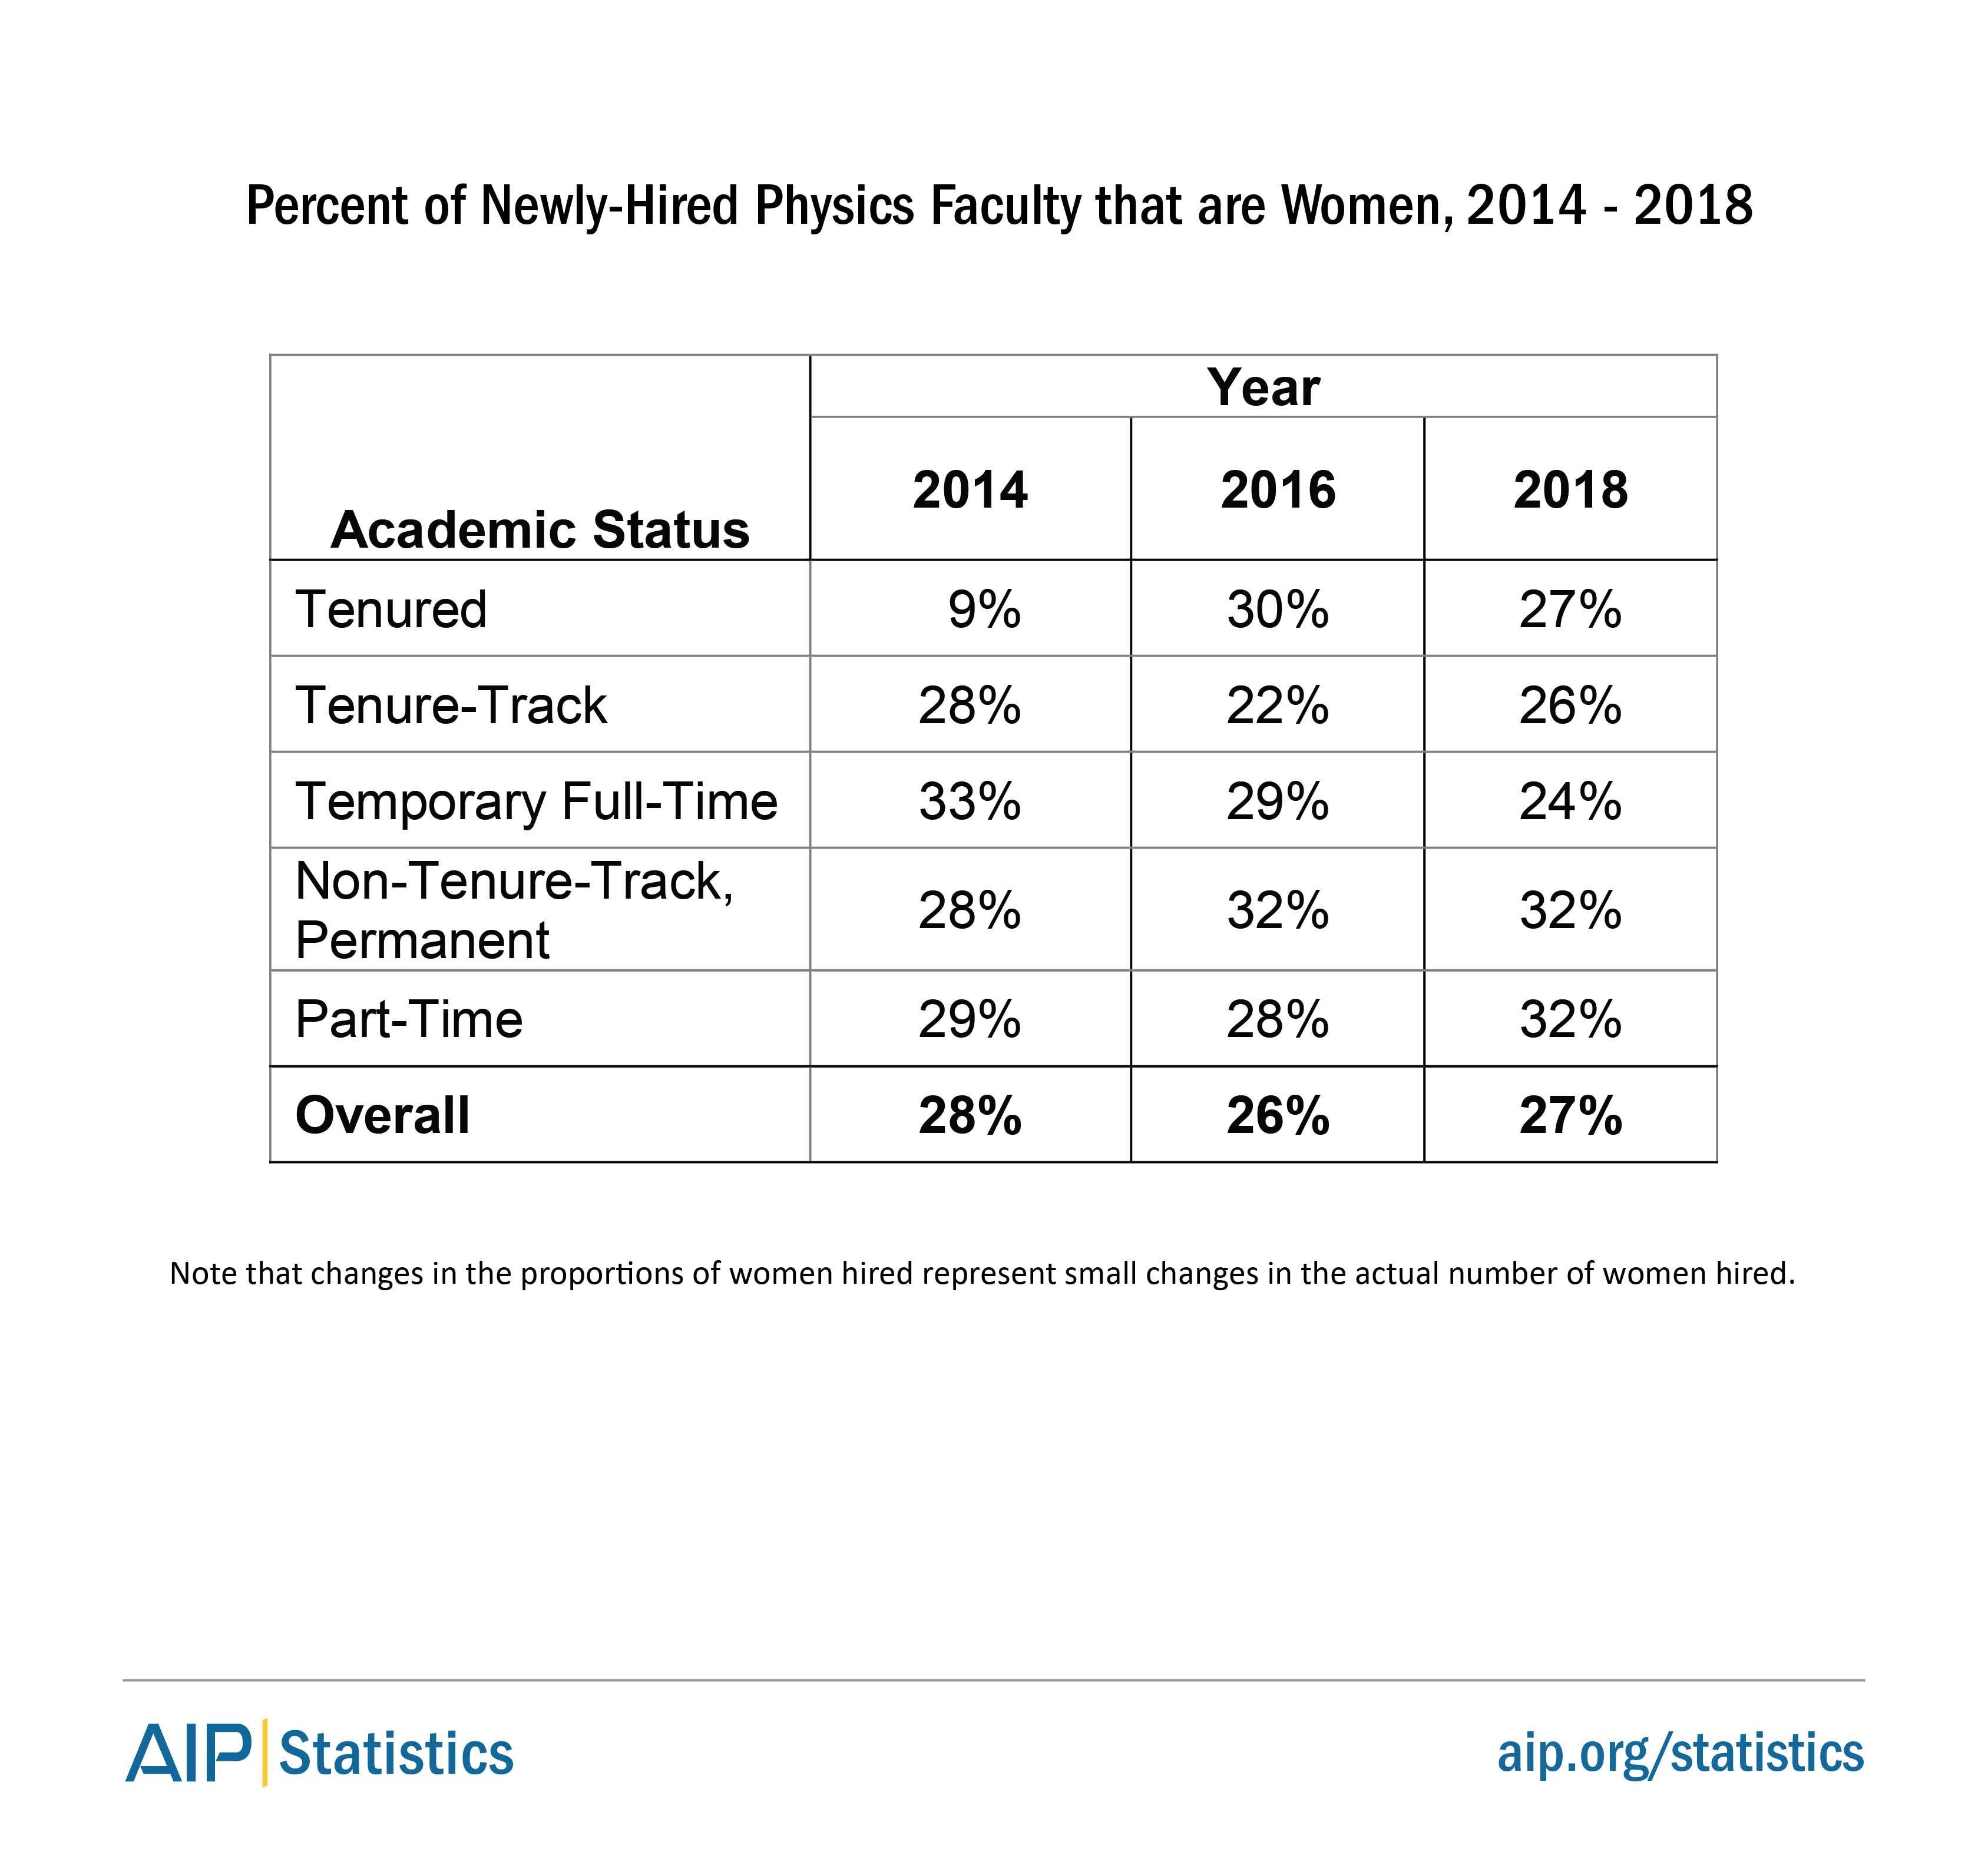 Percent of Newly-Hired Physics Faculty that are Women, 2014 to 2018